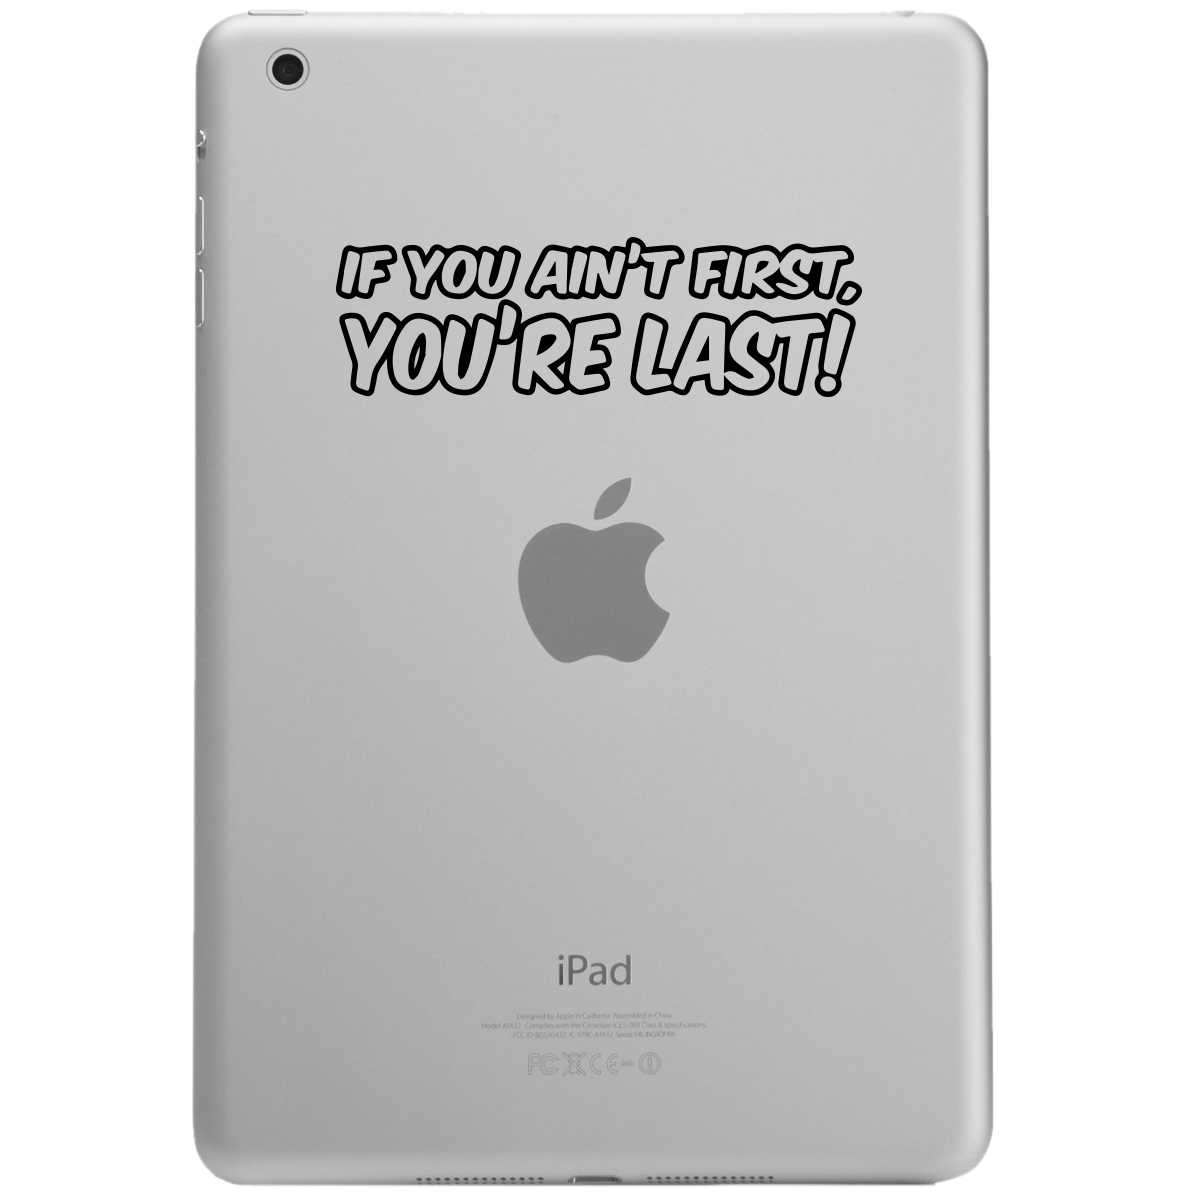 Funny Ricky Bobby Quote If You Ain't First You're Last iPad Tablet Vinyl Sticker Decal